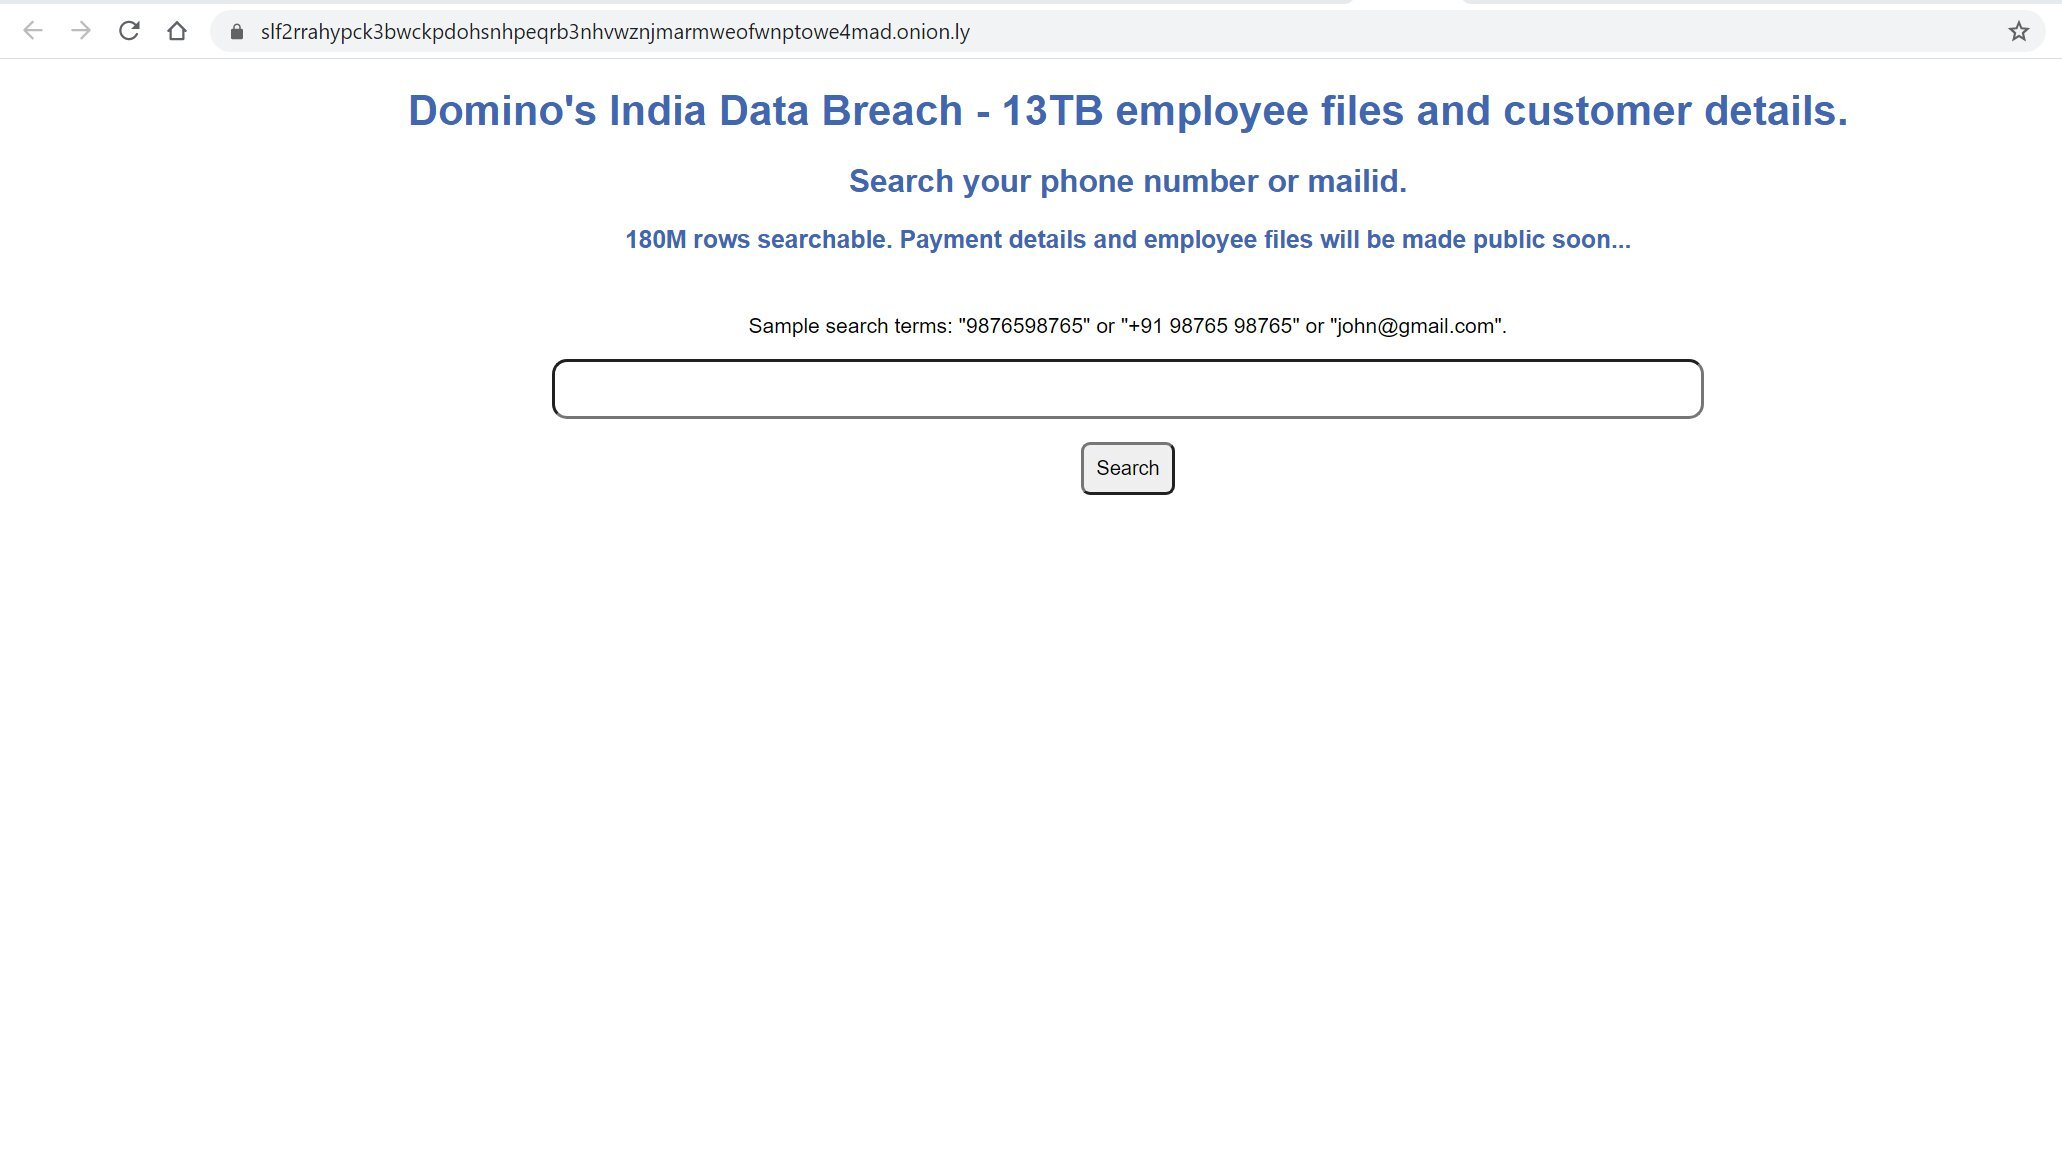 data breach domino's, domino's data breach, dominoes breach, dominoes data breach, dominoes data hack, dominoes data stolen, dominos breach, dominos data hacke, dominos india hack, dominos india hacked, dominos india data, dominos data leak, dominos india users, leaked data of dominos, Computer Security, computers, cyber attacks, cyber news, cyber security news, cyber security news today, cyber security updates, cyber updates, cybersafe news, data breach, Data leak, data stealing malware, E-Commerce, fake malware, hacker news, hacking news, how to hack, information security, InfoSec, infosec news, linux, Mac, Malware, malware removal, network security, online security, personal data exposed, ransomware, ransomware attack, ransomware gang, ransomware group, ransomware malware, ransomware news, RCE, Remote Access Trojan, Remote Code Execution, rootkit, Security, smartphone, software vulnerability, spyware, Supply Chain, support, system update app, system update malware app, tech, tech news, tech support, tech updates, technical support, trojan, virus, virus removal, Vulnerability, what is ransomware,